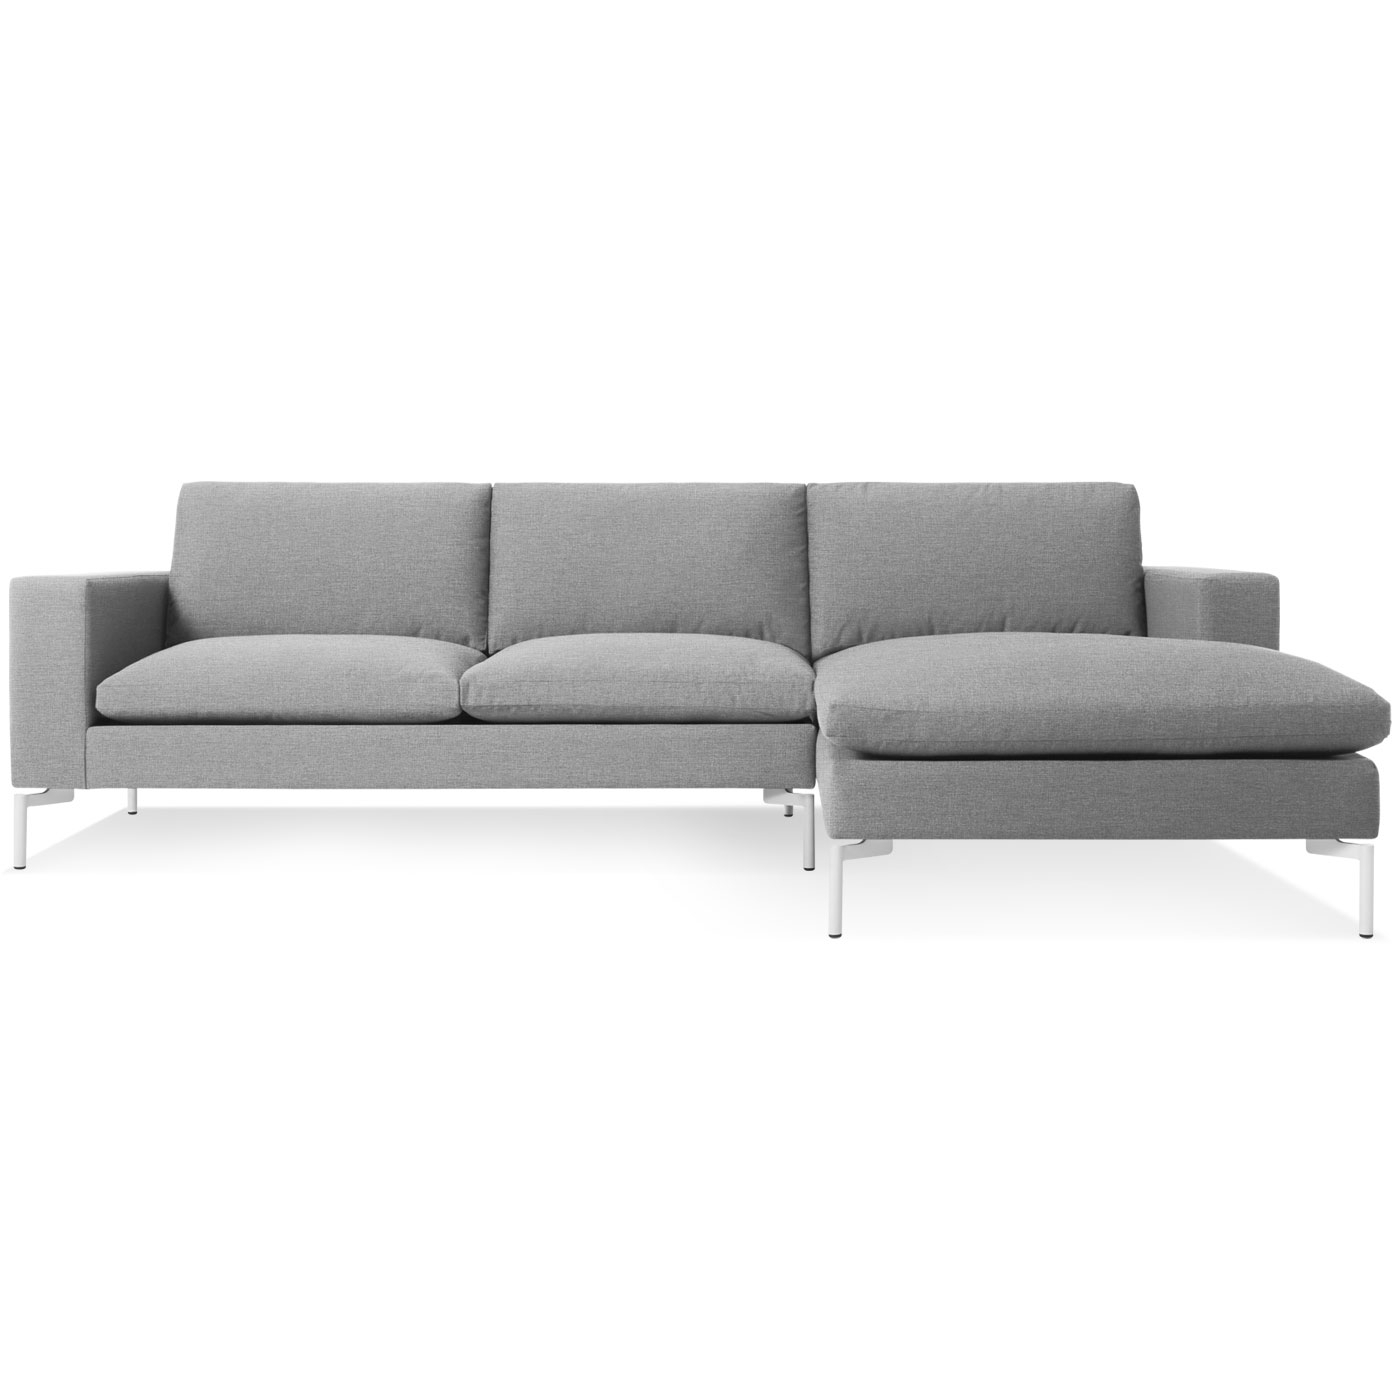 Famous New Standard Modern Chaise Sofa – Left Chaise (View 2 of 15)